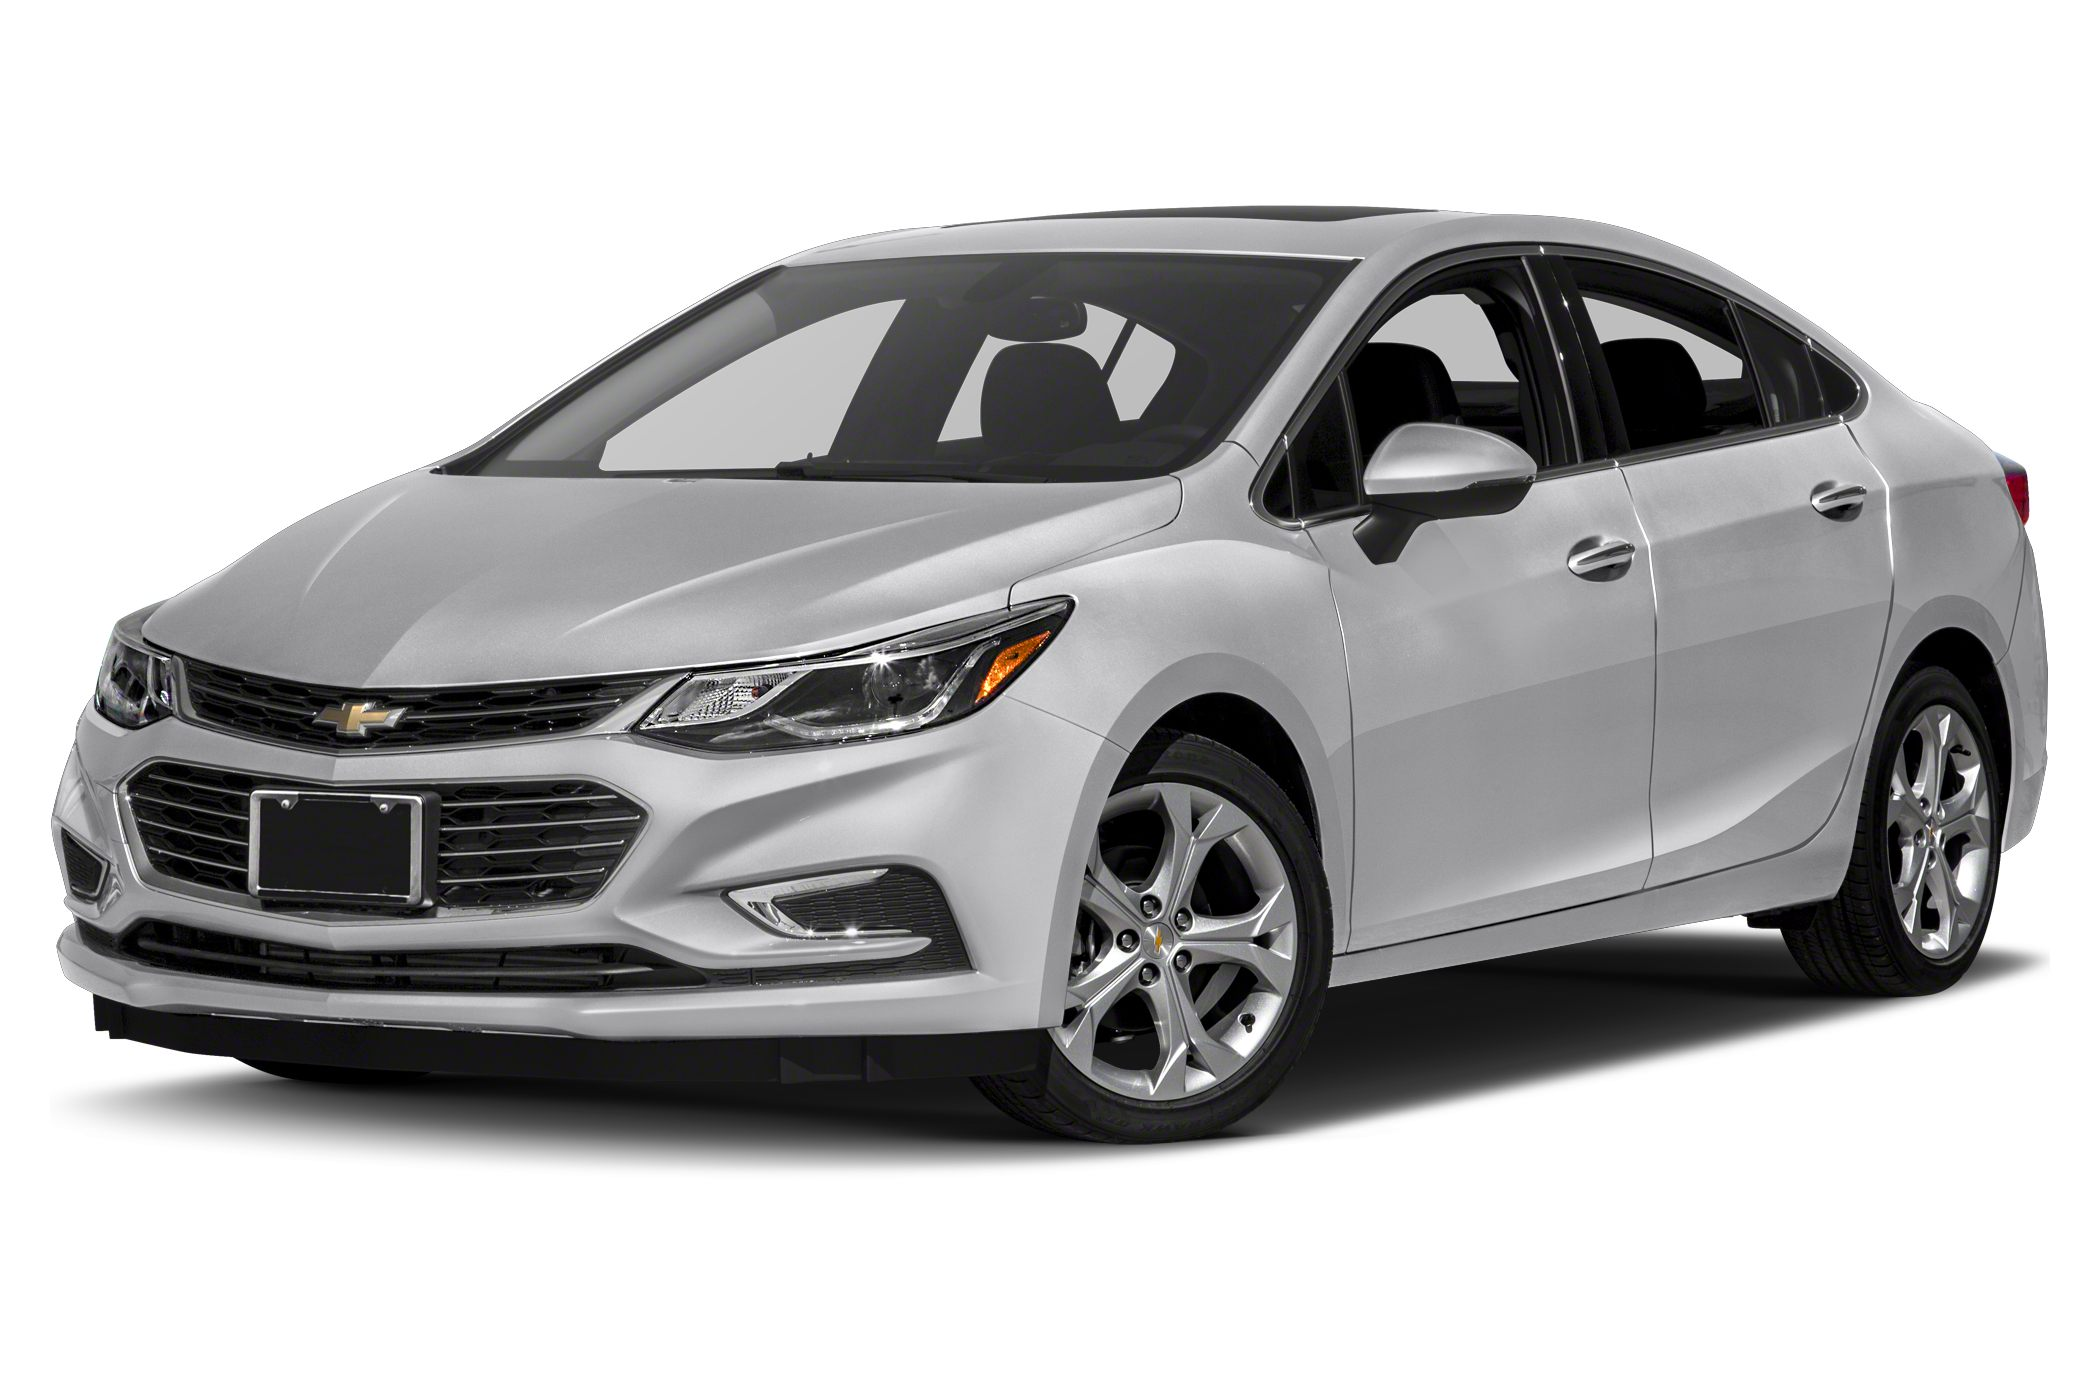 2017 Chevrolet Cruze Premier Come experience a whole new way of buying pre-owned At Paul Masse w